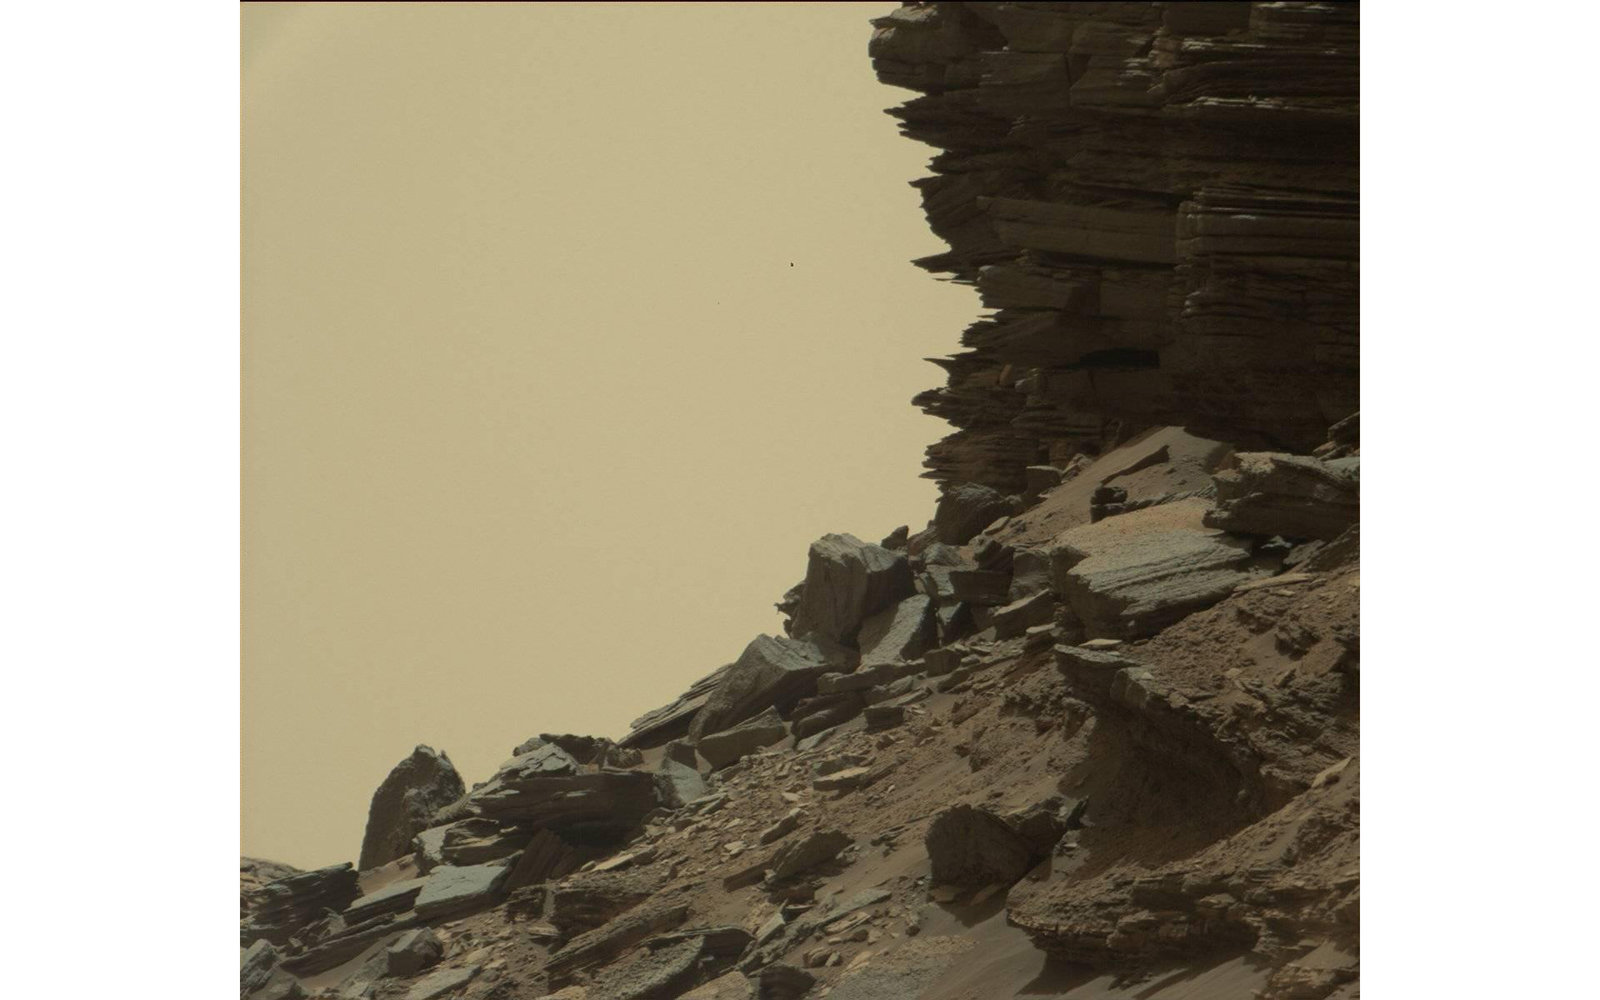 mars-murray-buttes-05-SW0916.jpg